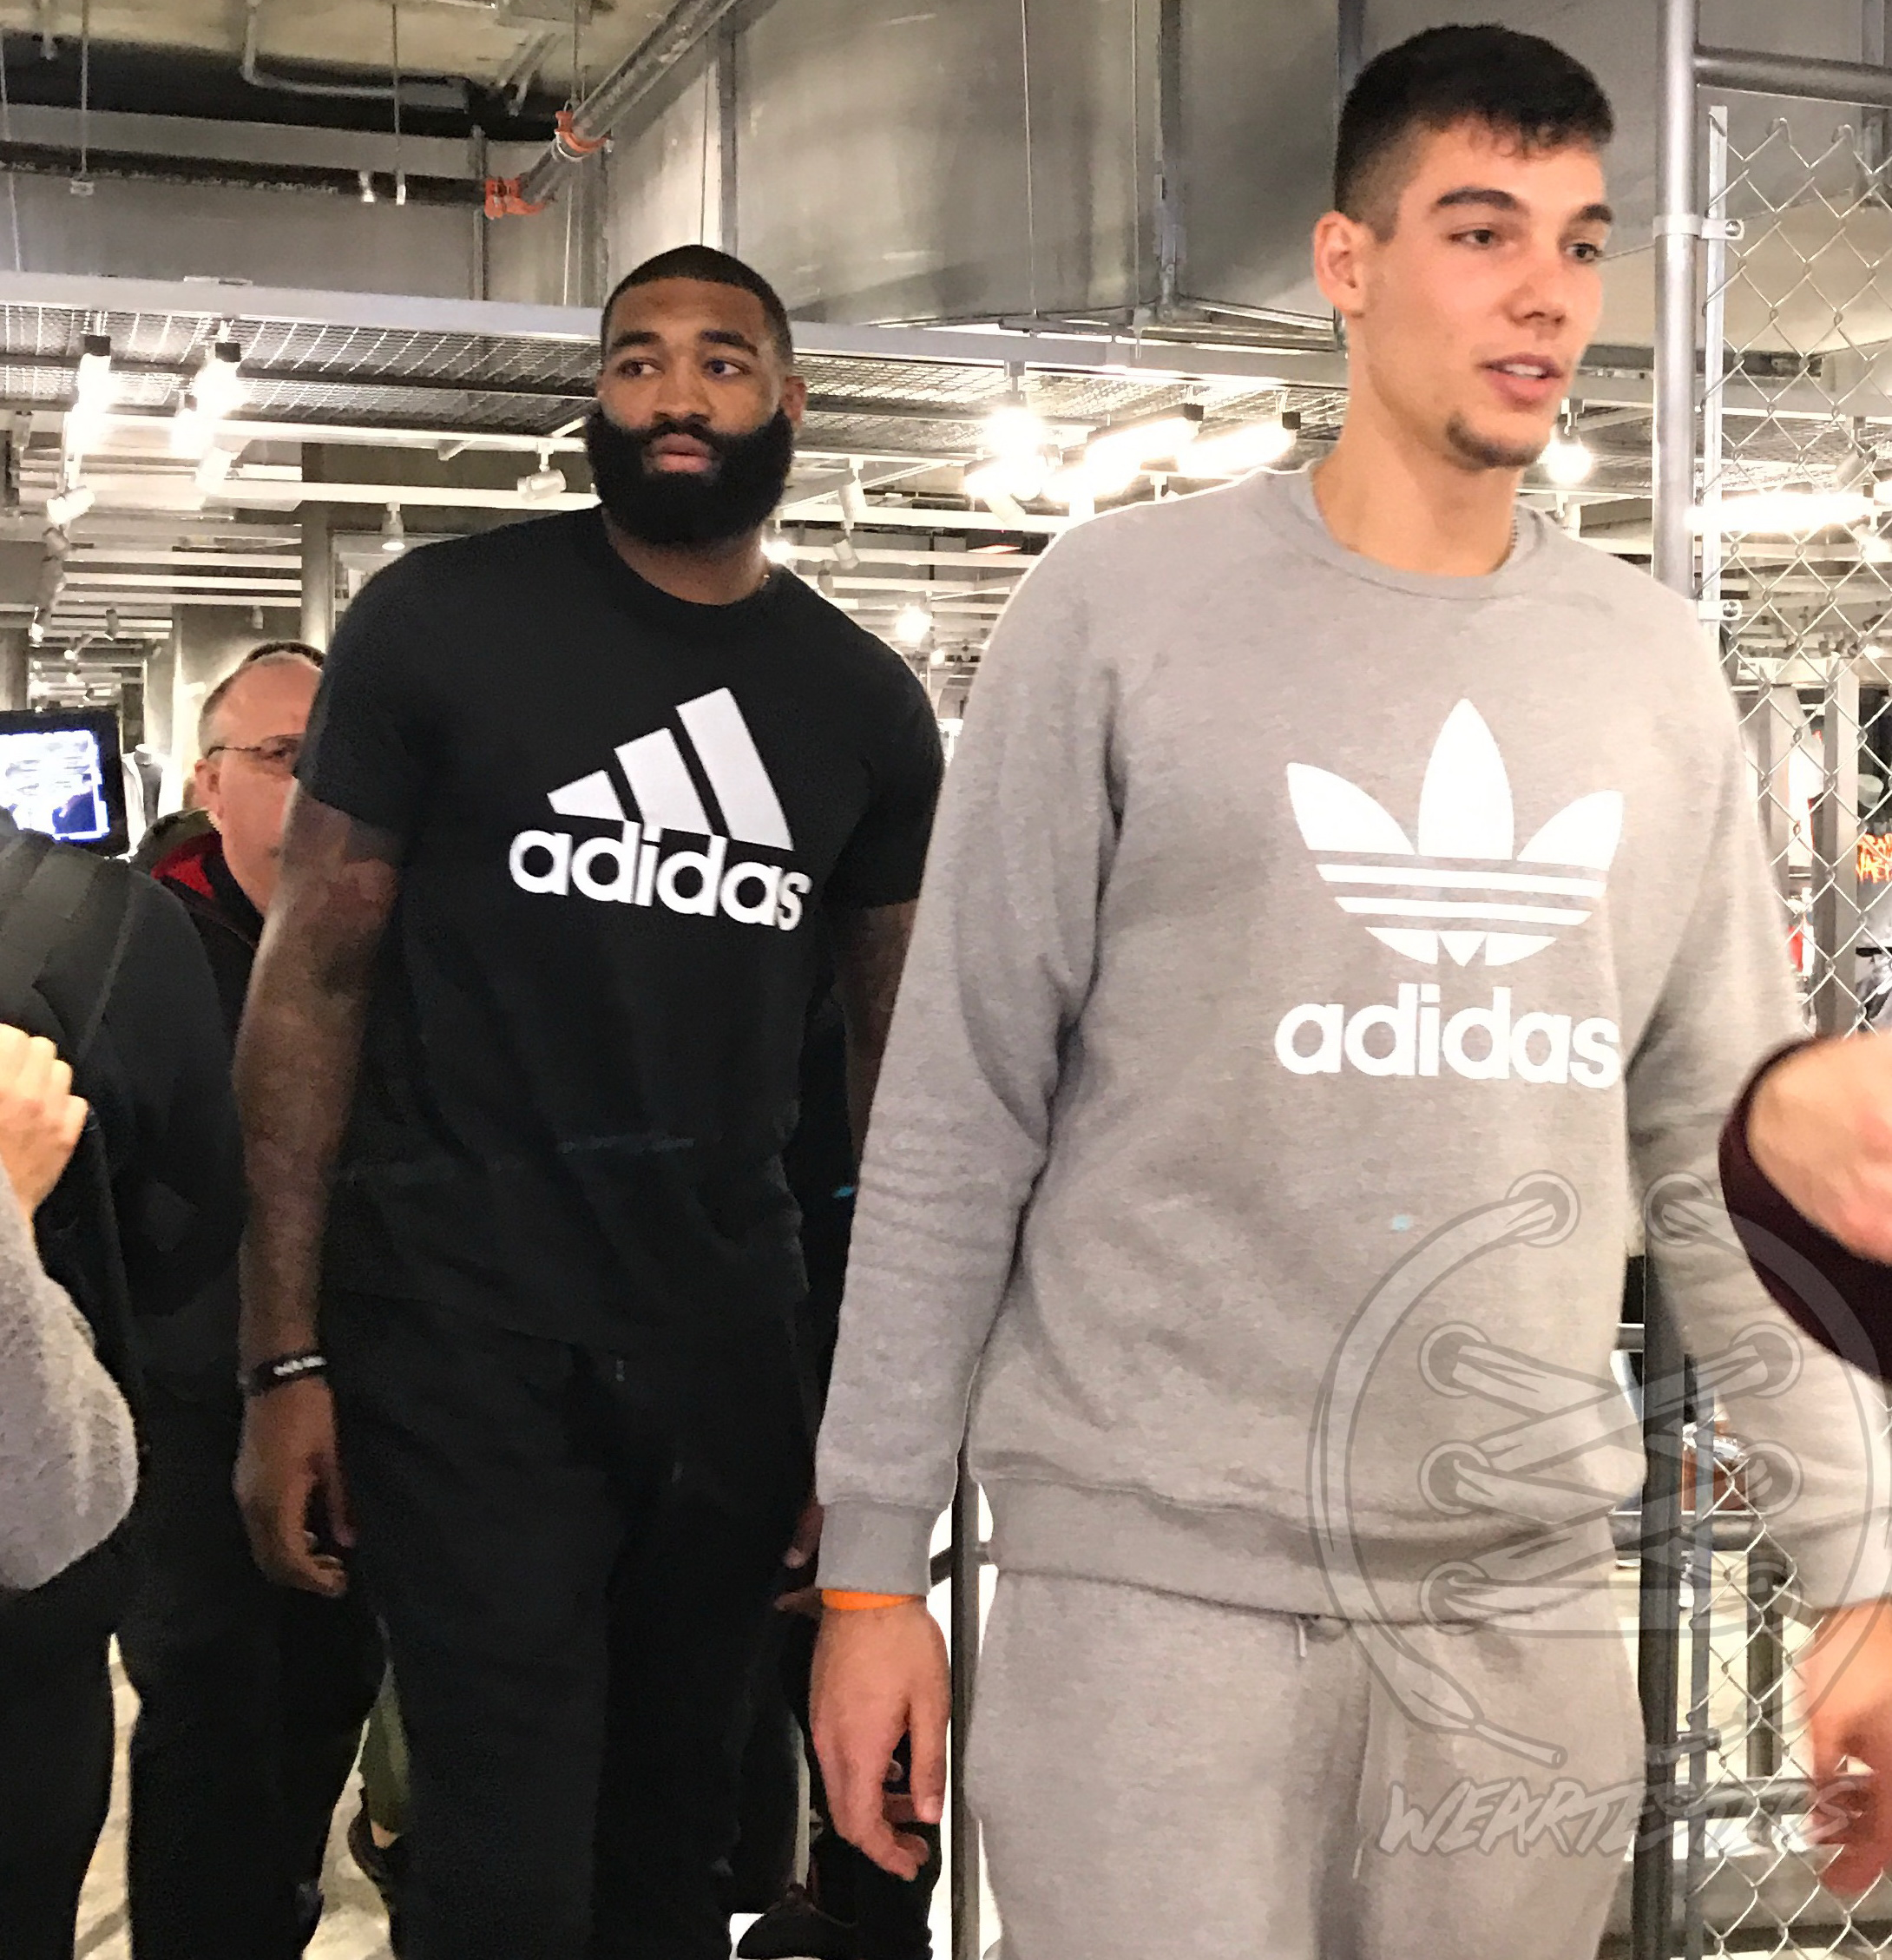 Adidas NYC - Willy and Kyle)